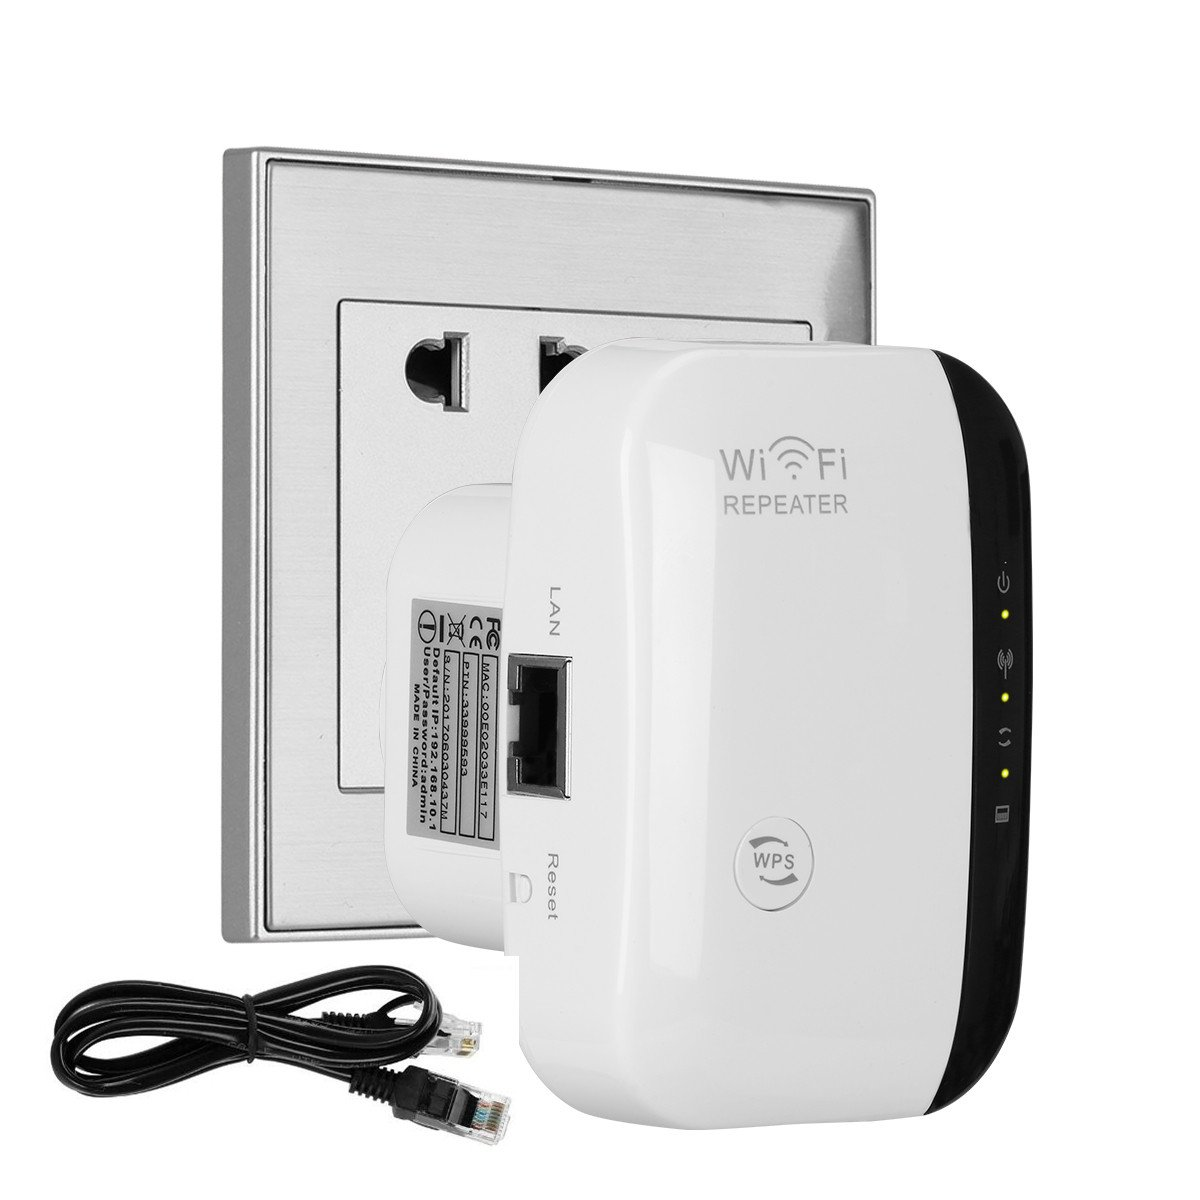 WIFI Extender, Flyisland WIFI Booster Wireless Repeater WIFI Range Extender Antenna AP/Repeater with Long Range Extender Integrated Antenna,RJ45 Port, WPS Dual Band 300Mbps 2.4GHz (300Mbps) by Flyisland